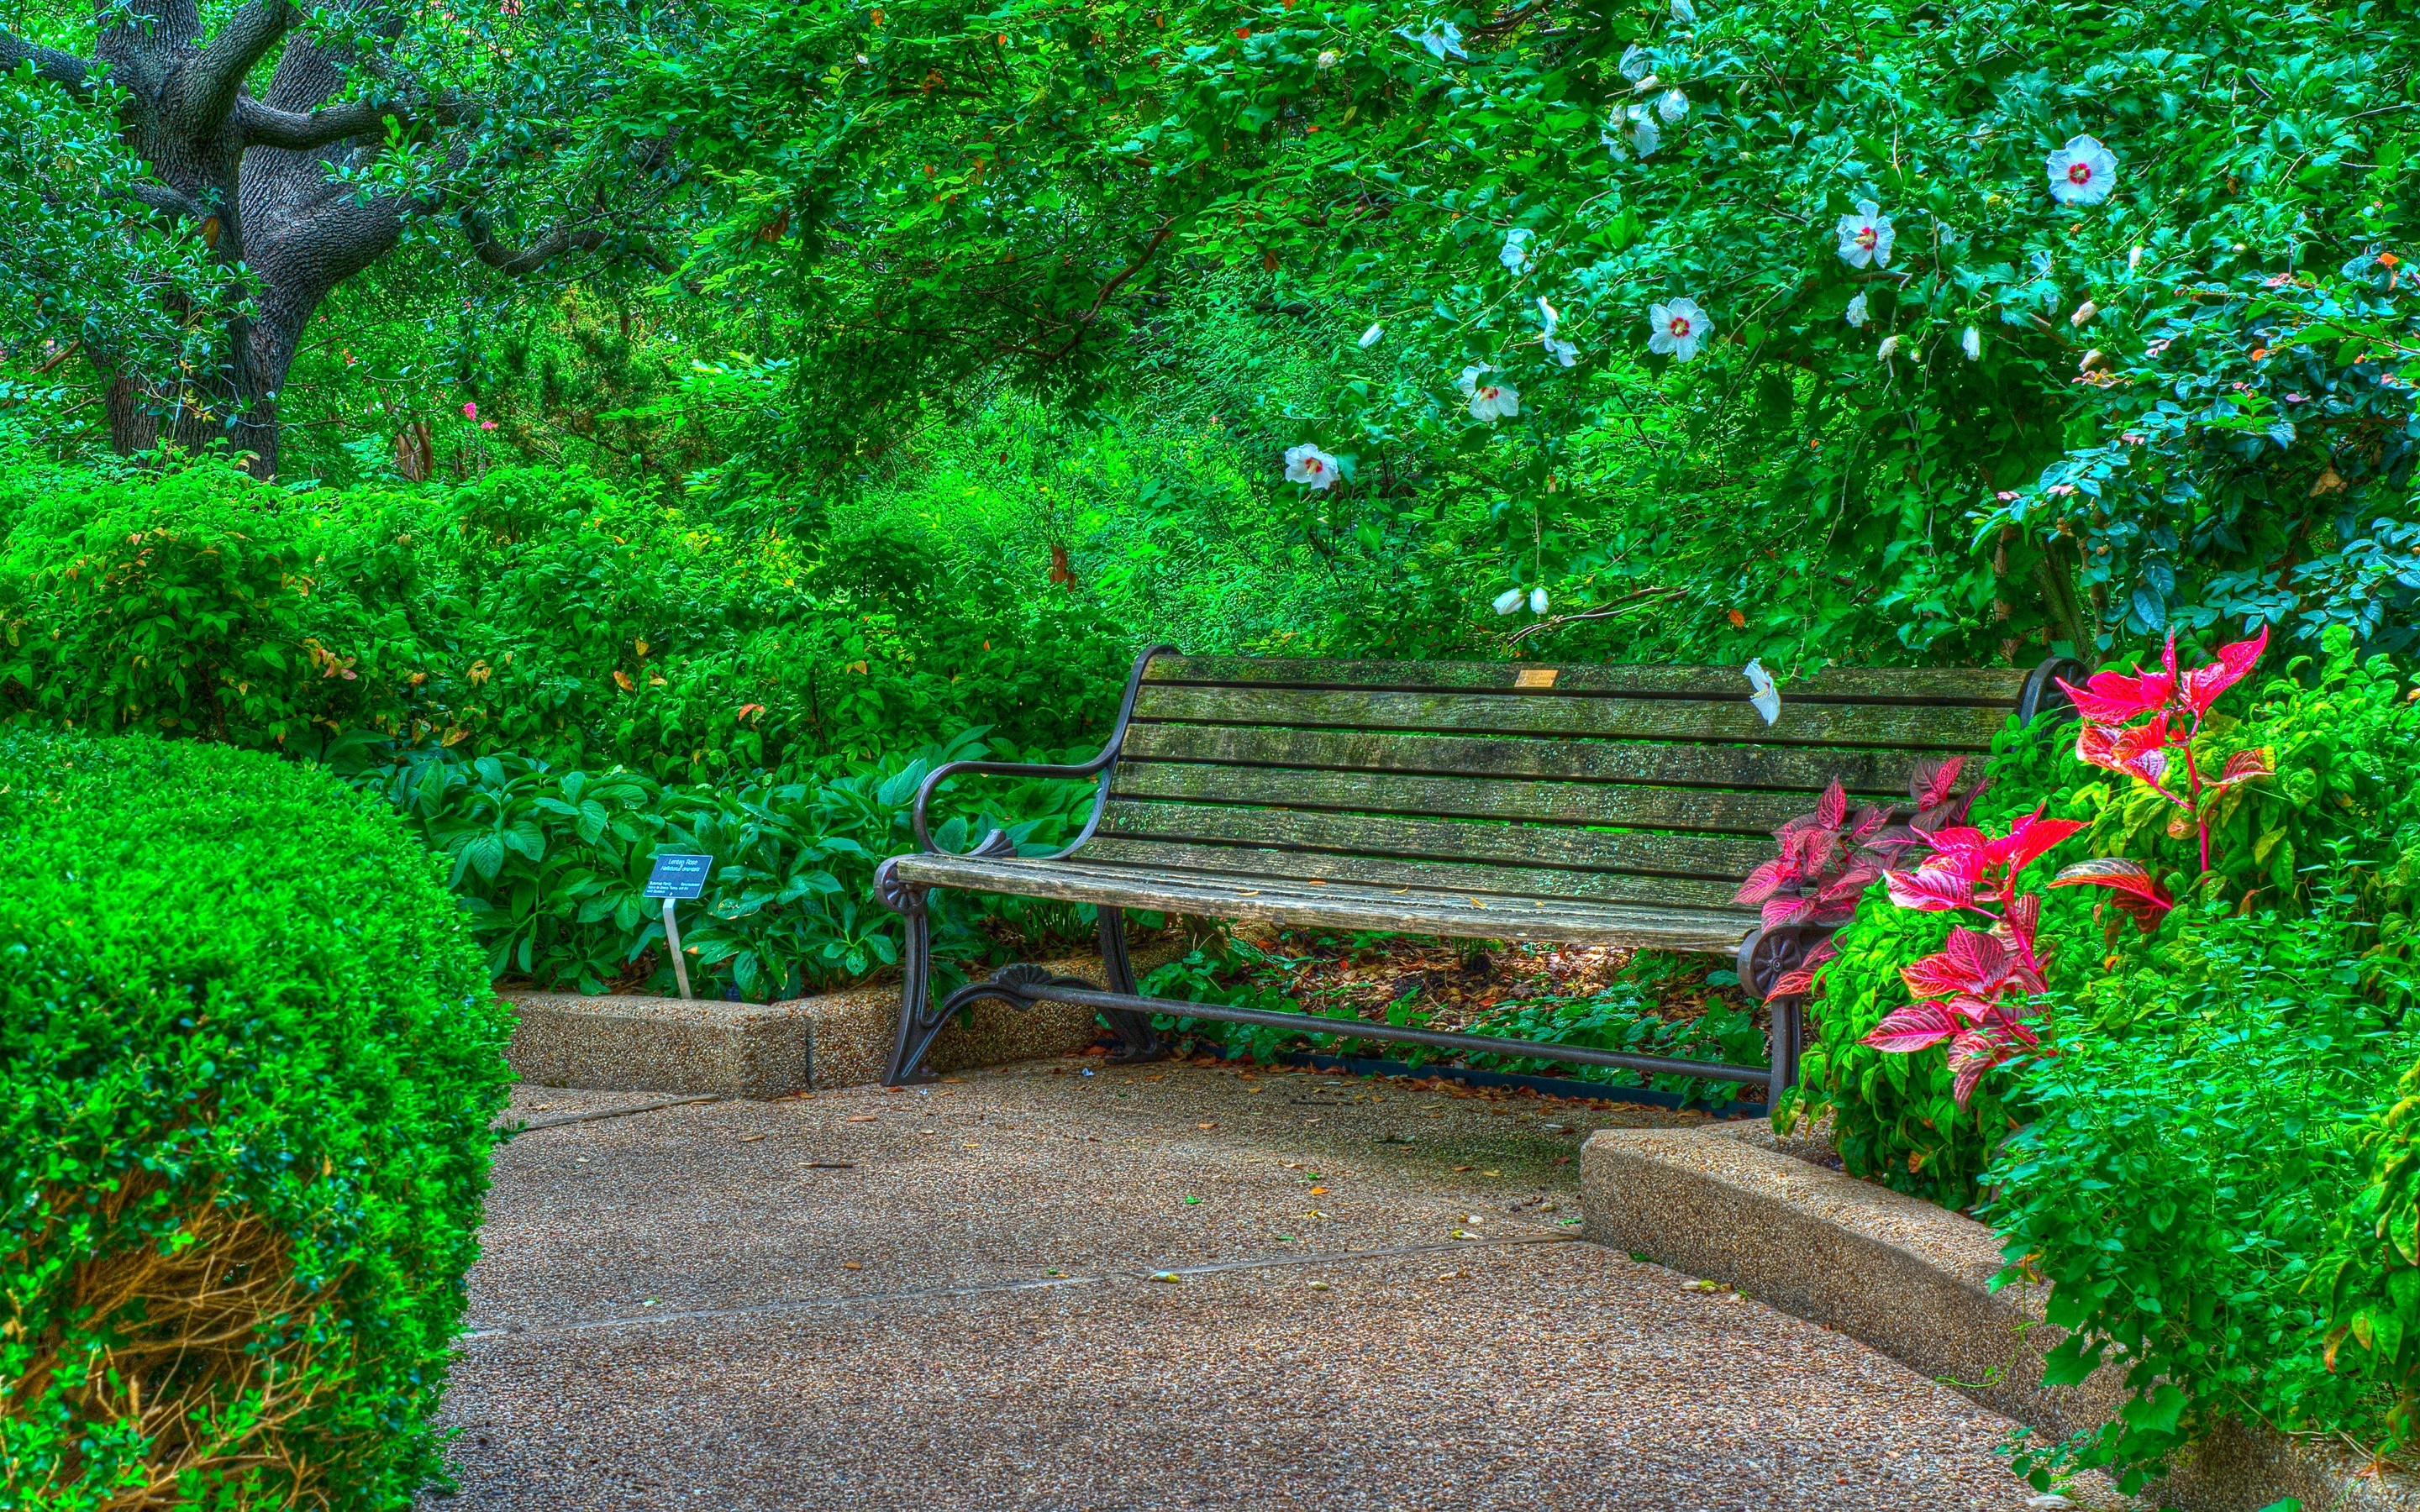 Bench In Spring Park Hd Wallpaper Background Image 2880x1800